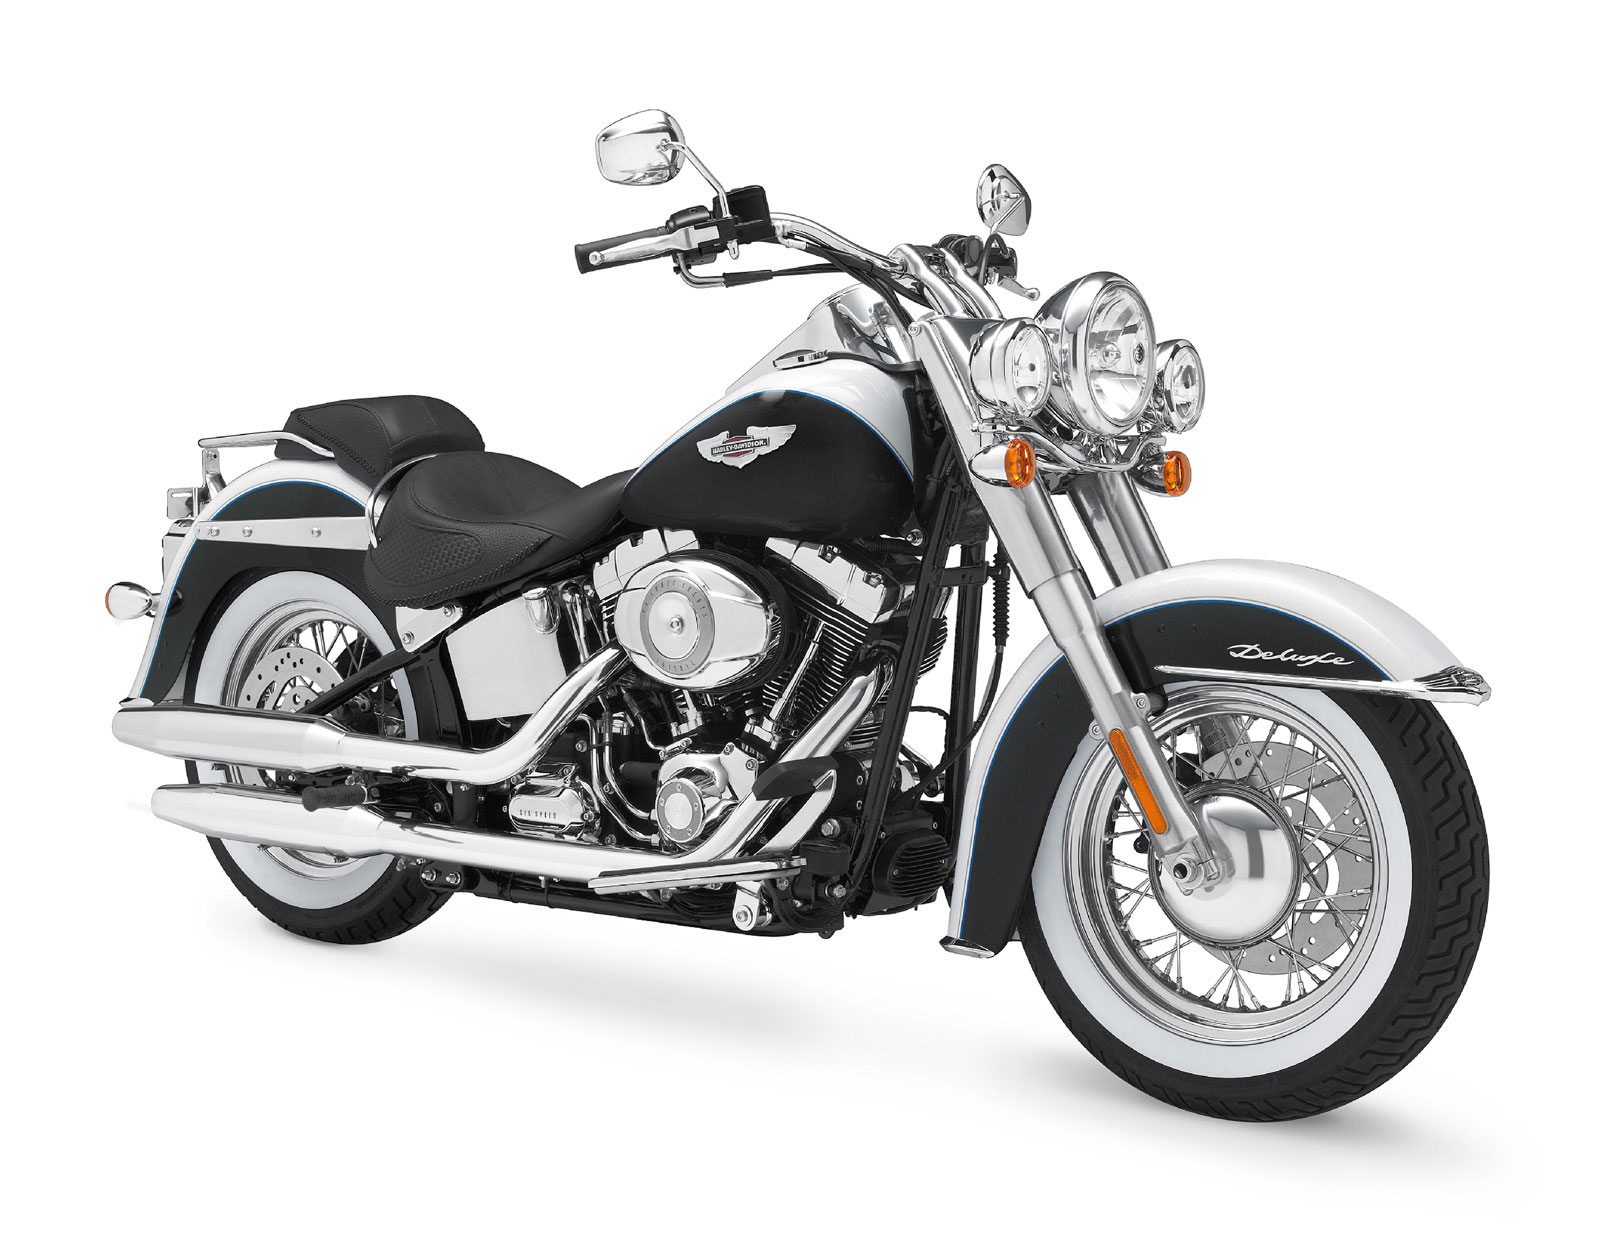 Harley Davidson Softail Deluxe Seat